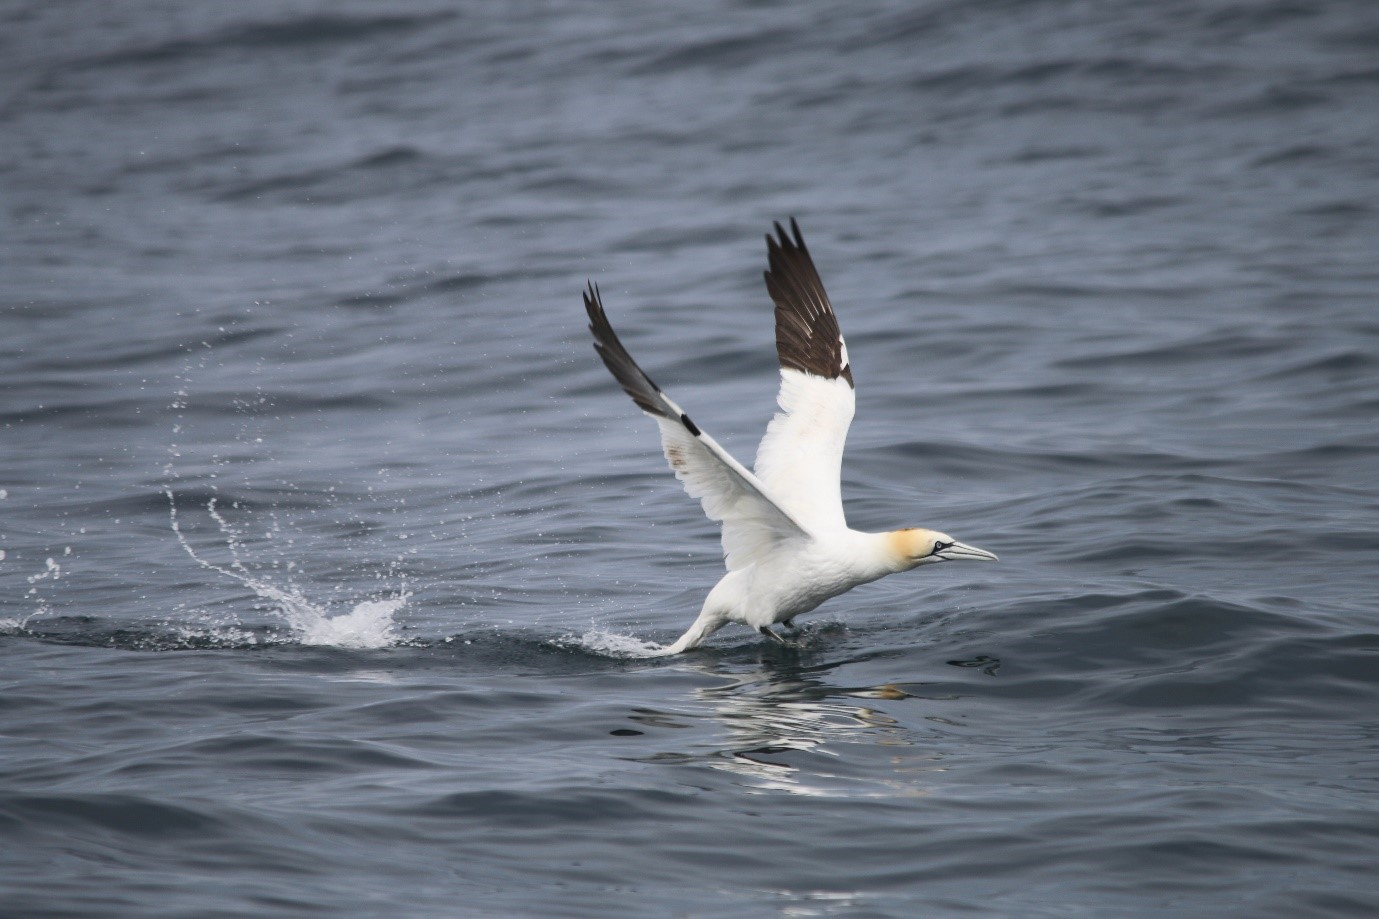 One of the hundreds of gannets seen on HWDT 4